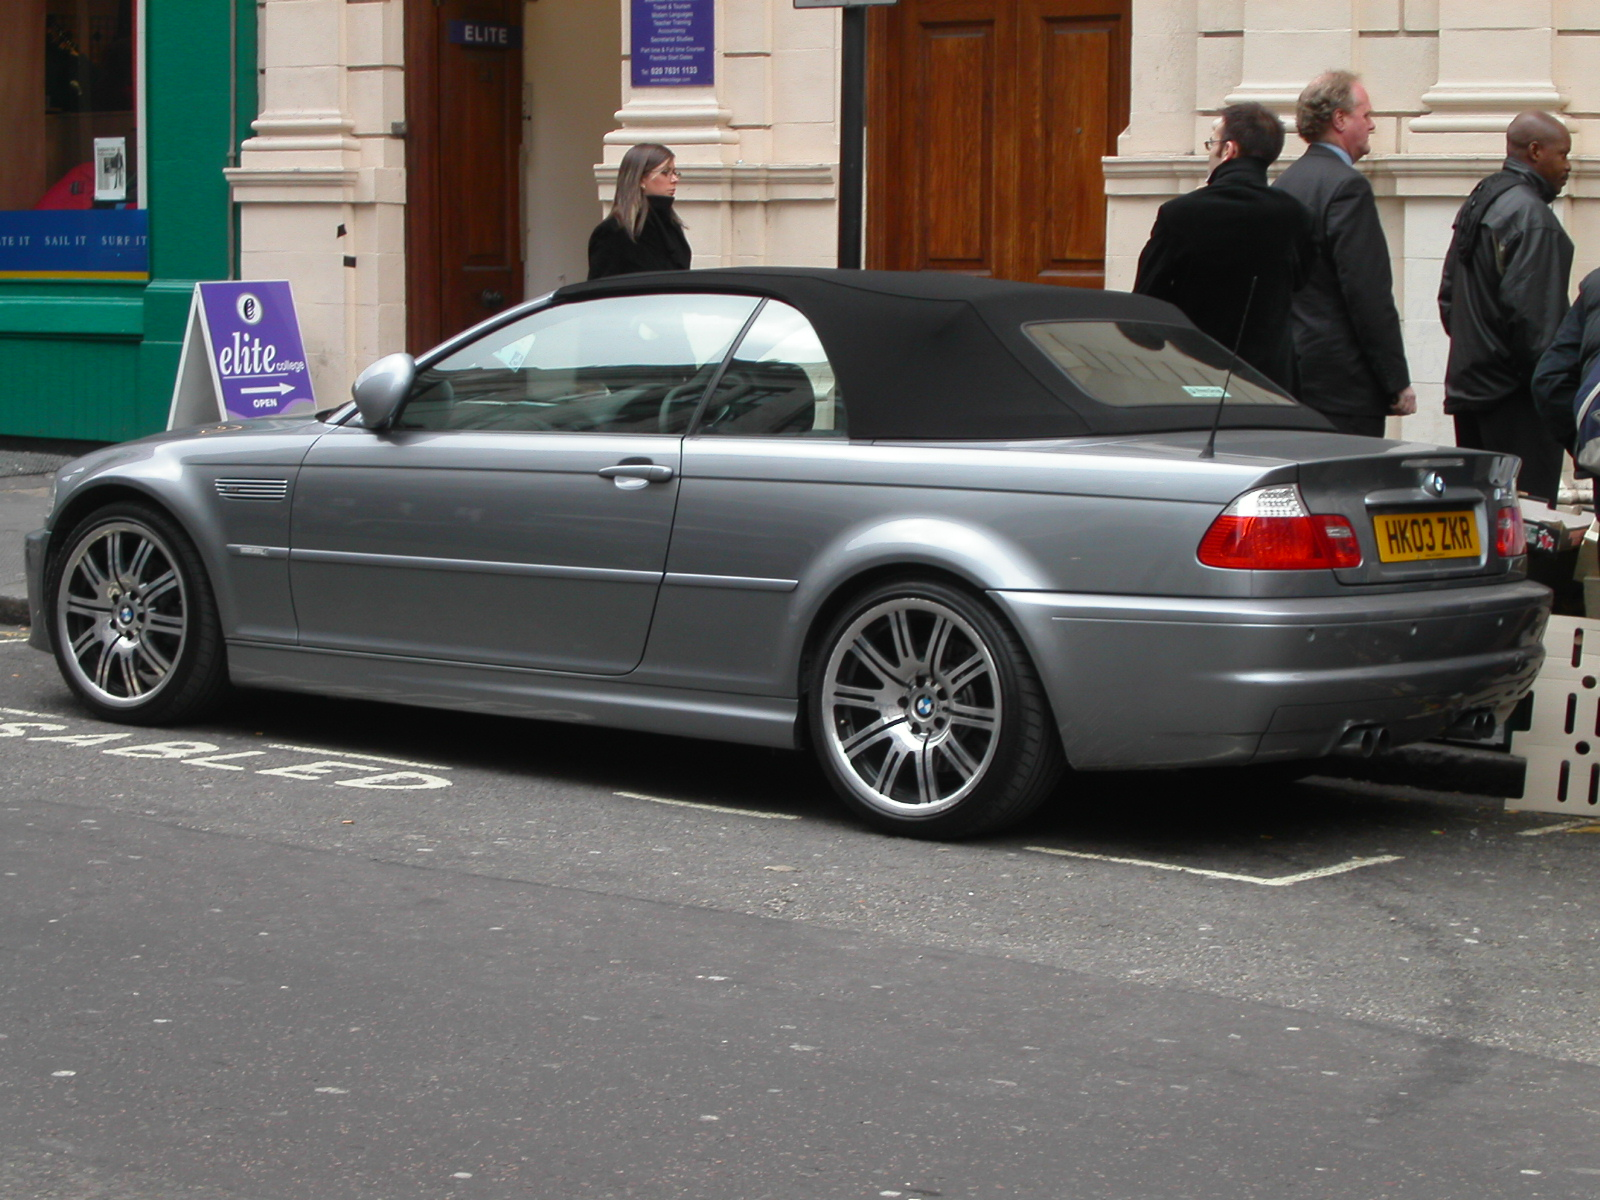 file bmw m3 e46 cabriolet jpg wikimedia commons. Black Bedroom Furniture Sets. Home Design Ideas